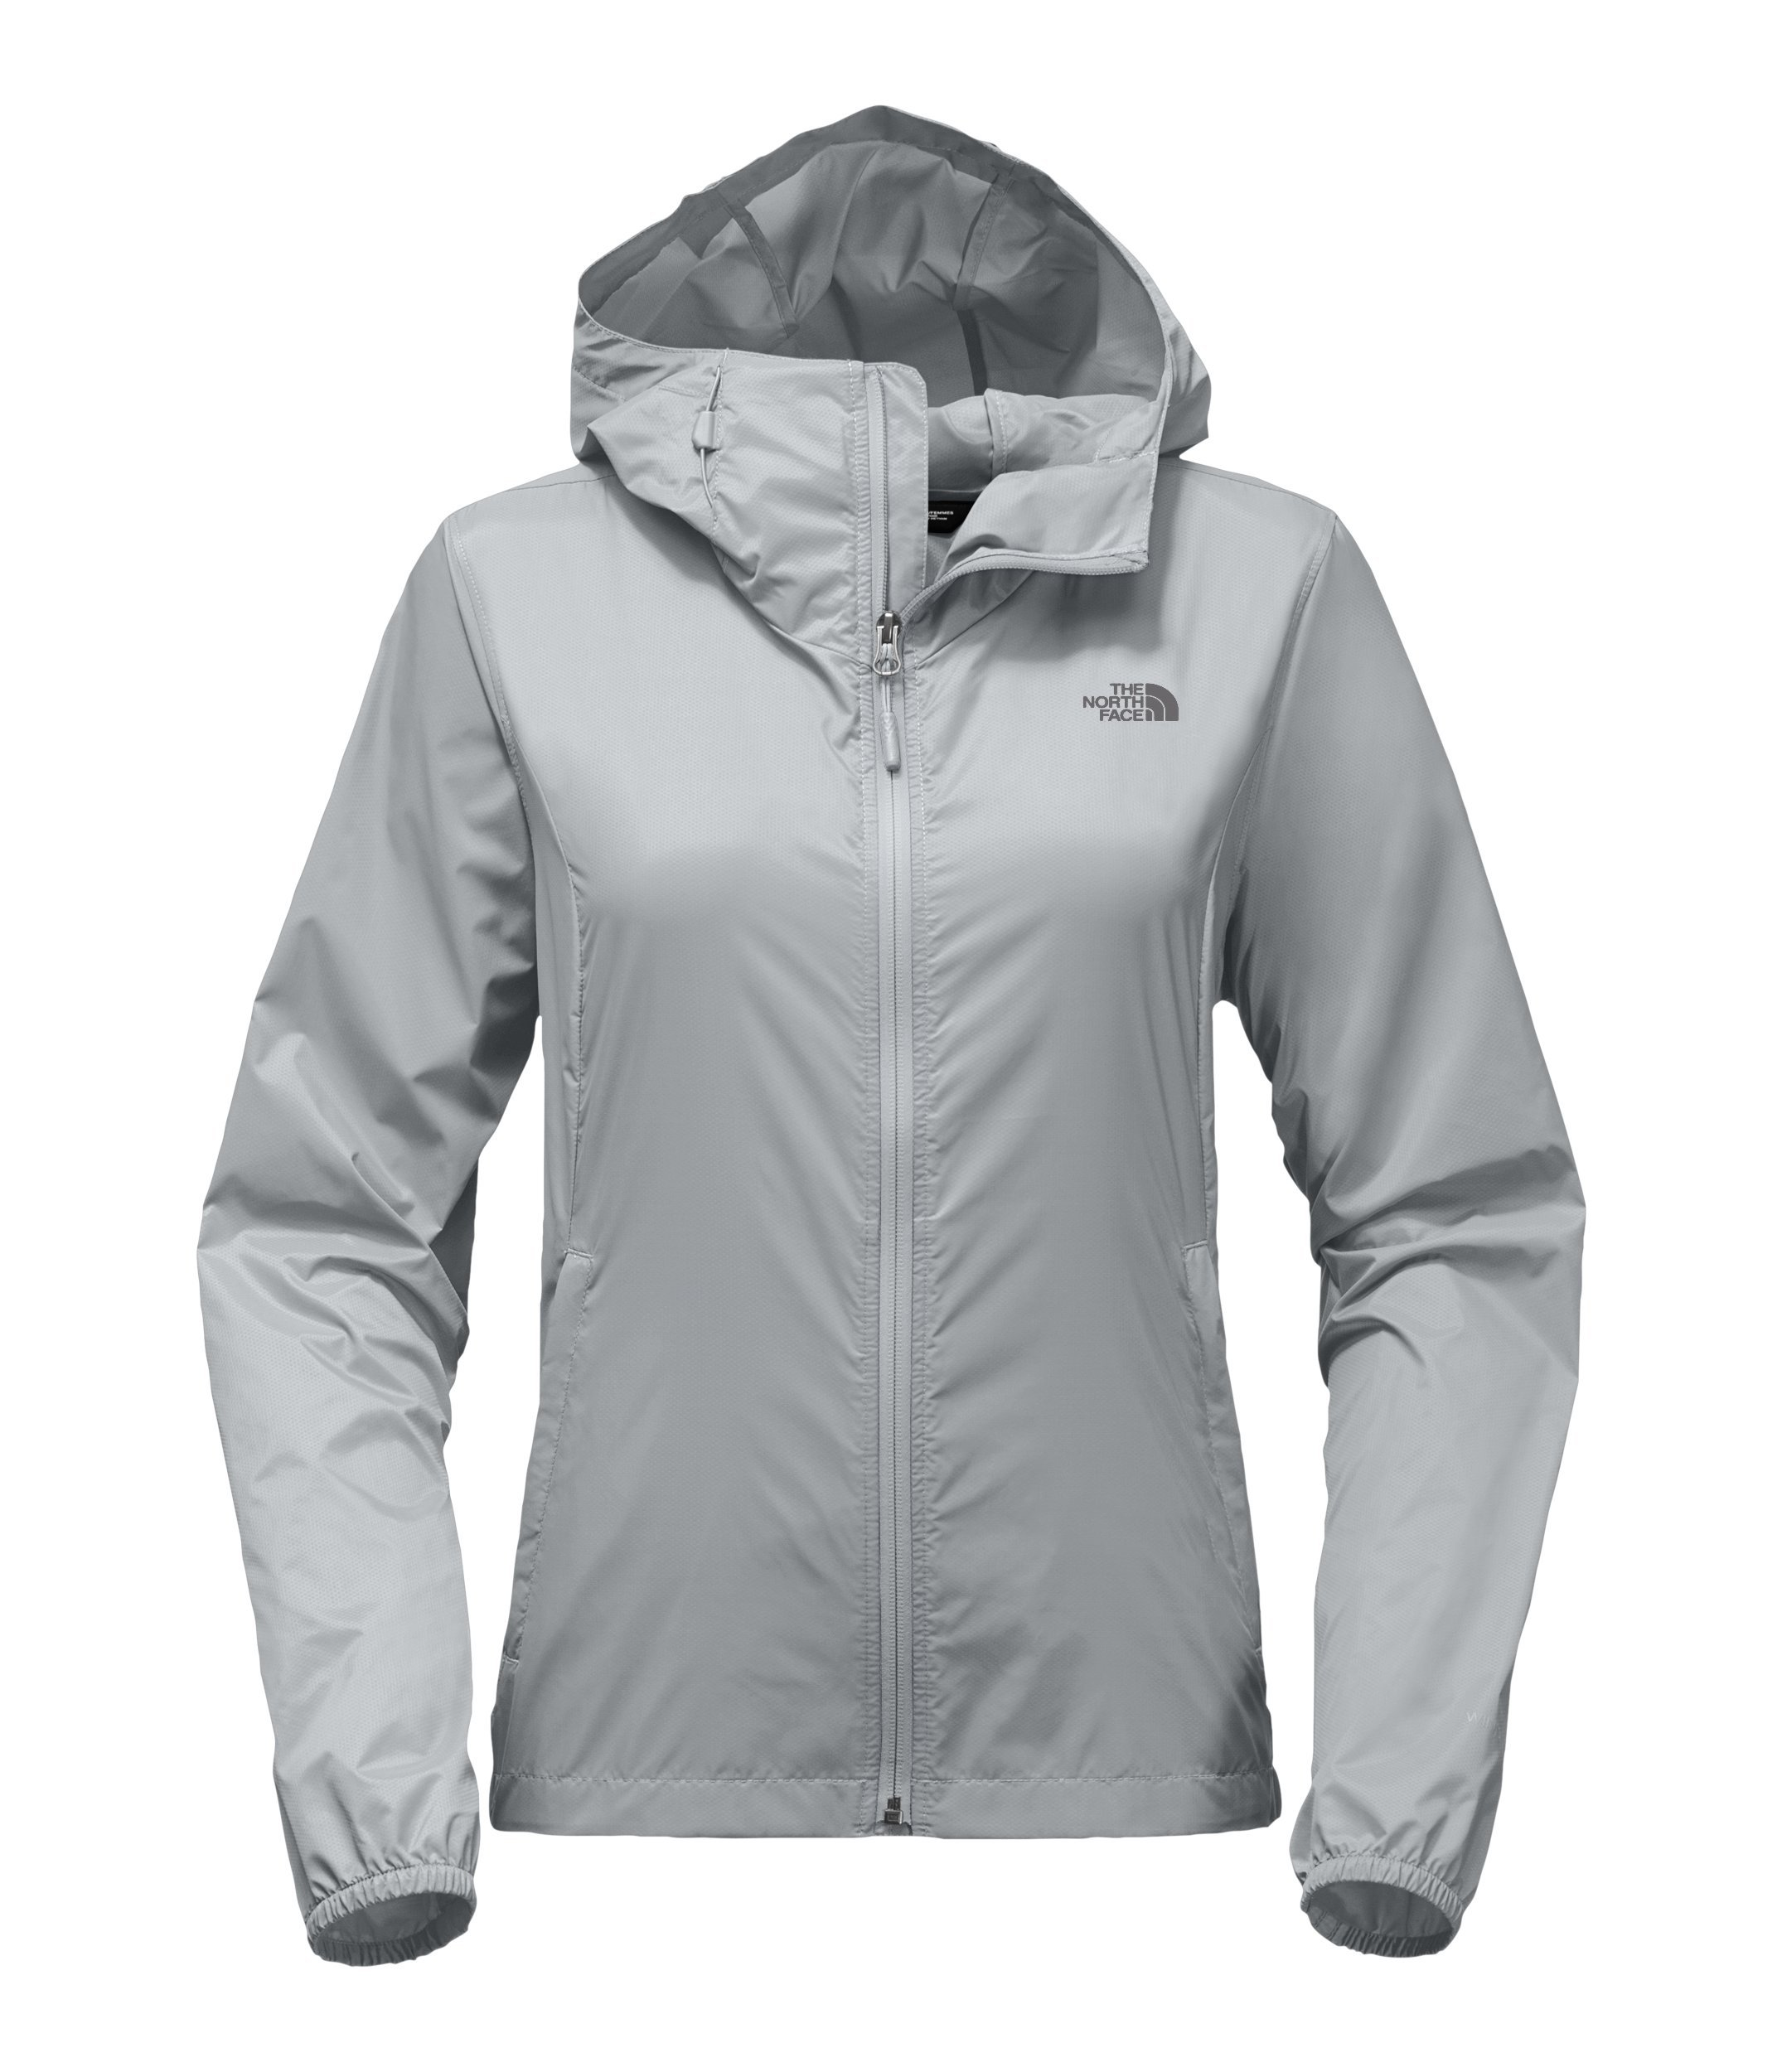 The North Face Women's Cyclone 2 Hoodie - High Rise Grey - XS